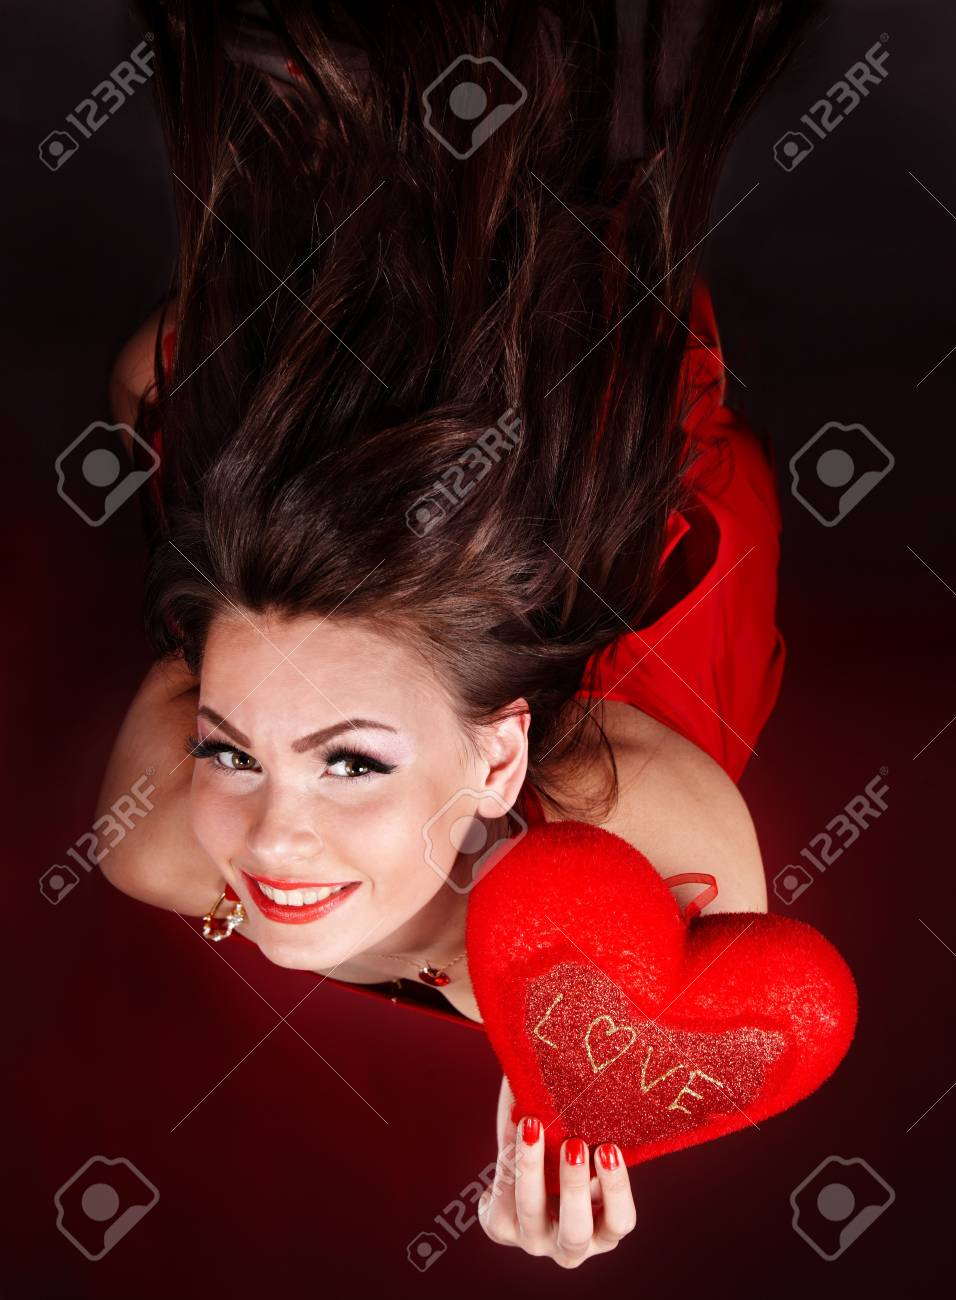 Girl with heart  in red flying.Valentines day. Stock Photo - 6283931